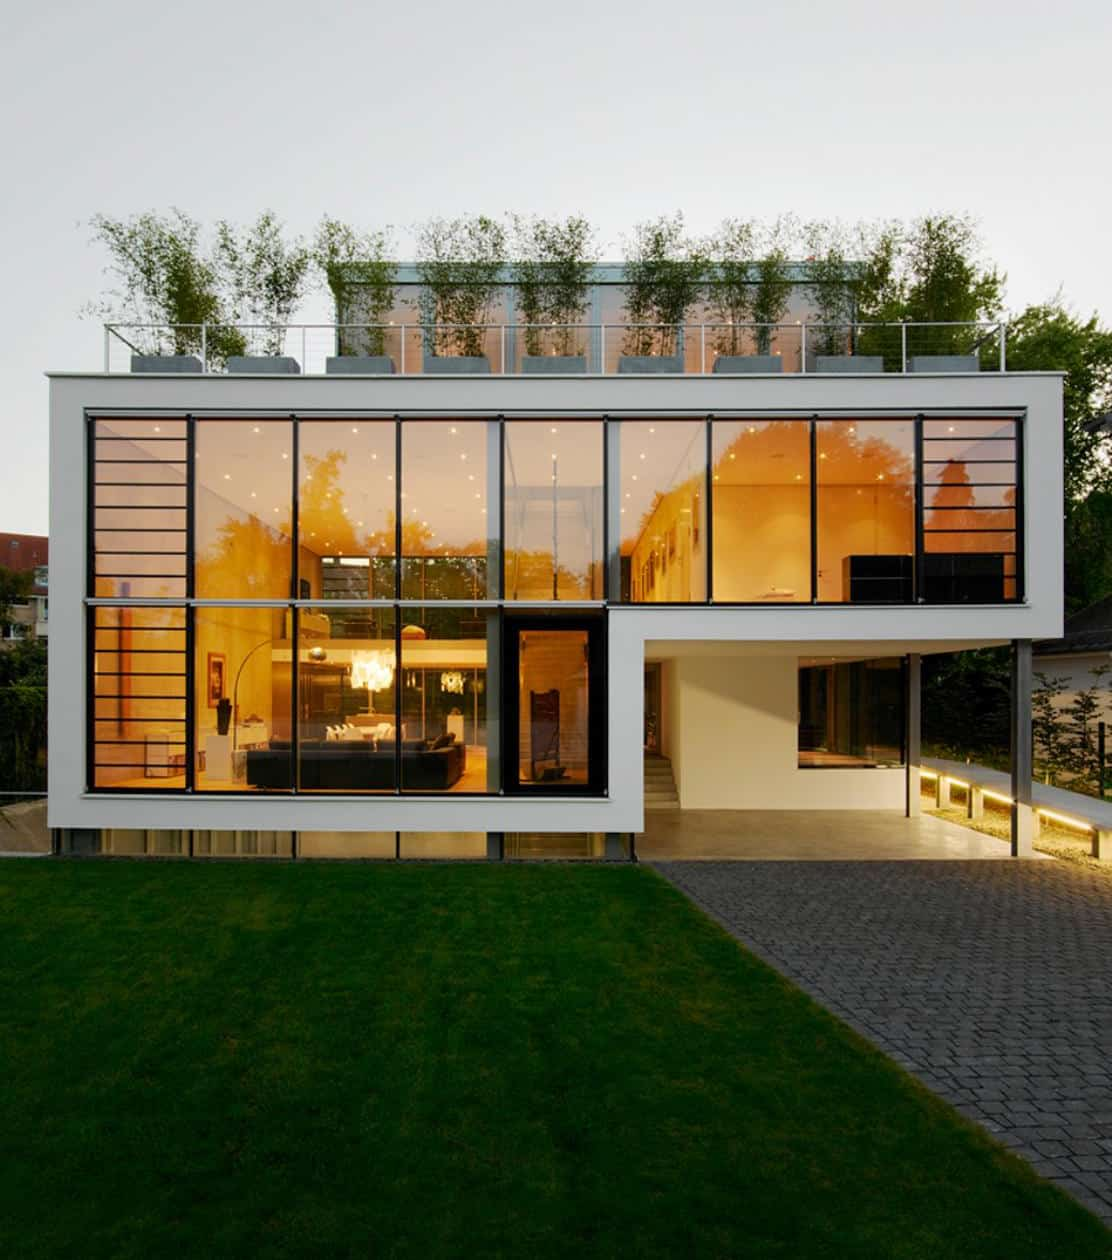 Energy Optimized House With Roof Terrace, Louver Windows